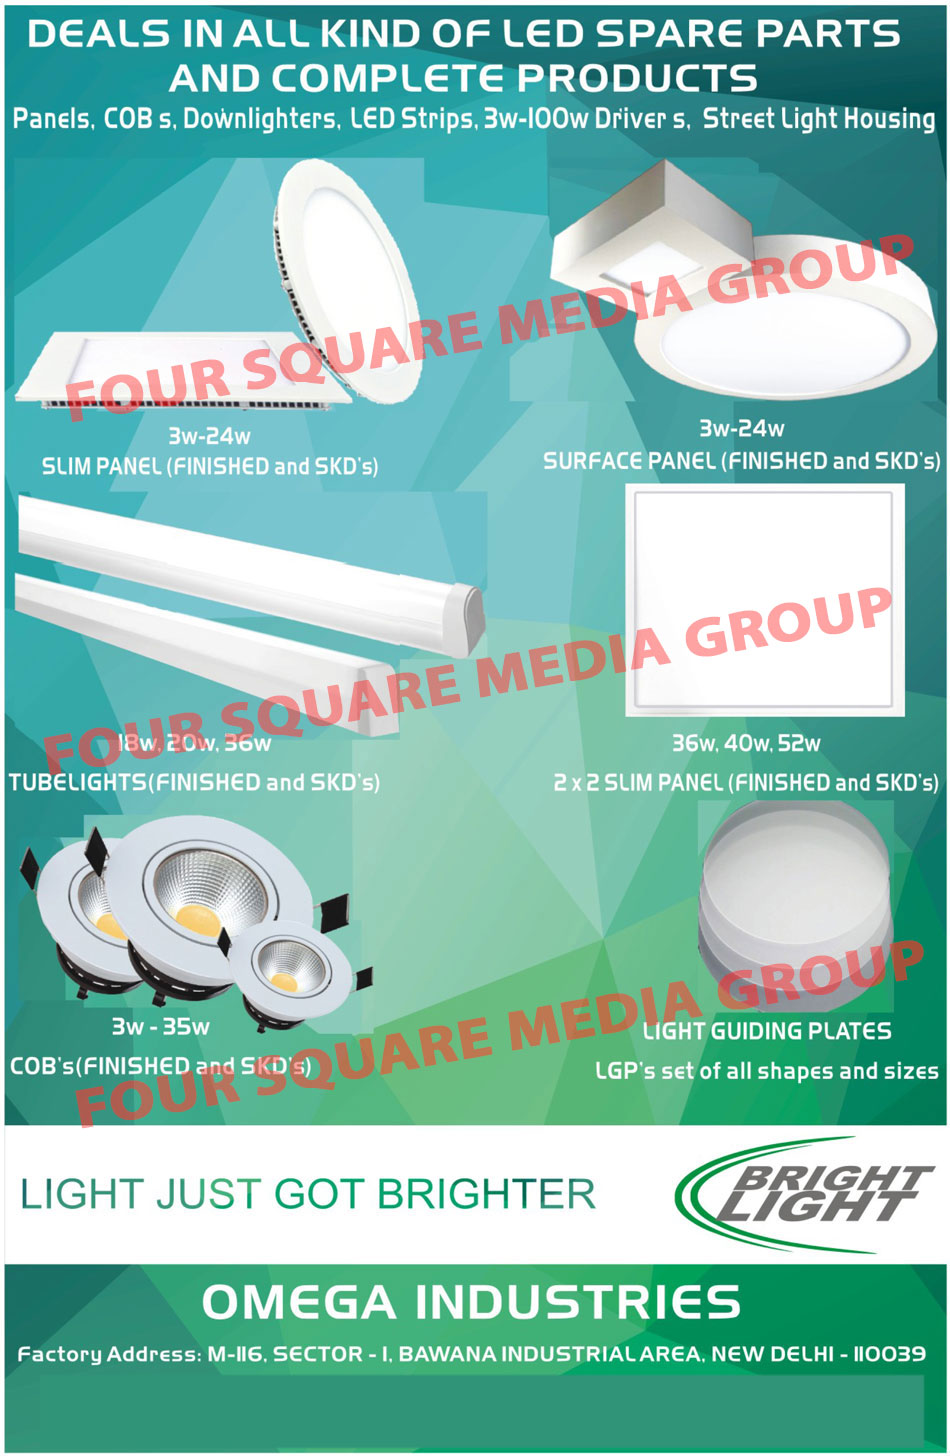 Led Lights, Led Spare Parts, Led Panels, Led Panel Lights, Led Down Lighters, Led Downlighters, Led Strips, Led Drivers, Led Street Light Housings, Slim Panels, Slim Panel Lights, Surface Panels, Surface Panel Lights, Led Tube Lights, COB Lights, Light Guiding Plates, LGP Sets, SKD Slim Panels, SKD Slim Panel Lights, SKD Surface Panels, SKD Surface Panel Lights, SKD Led Tube Lights